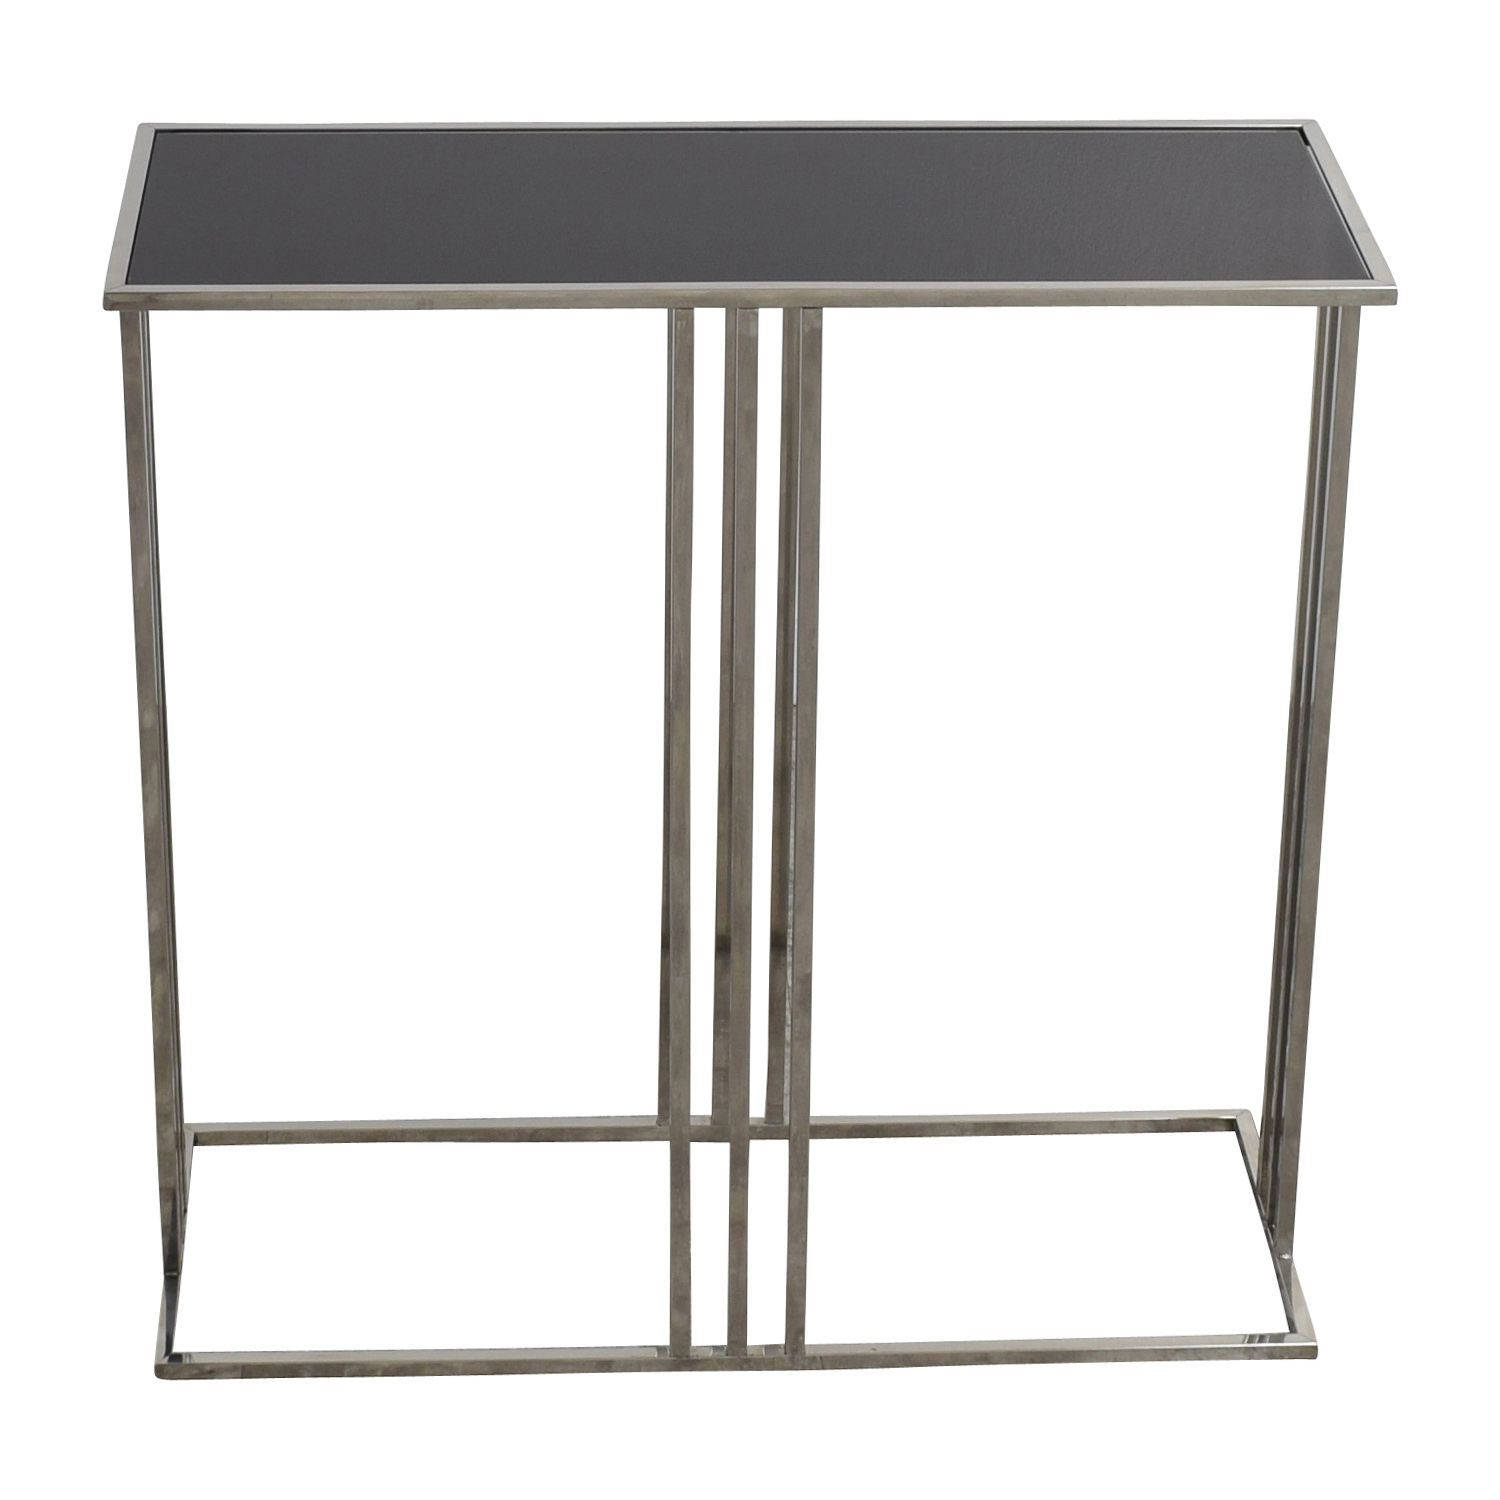 Marshalls Homegoods Black and Silver Console Entryway Table / Tables